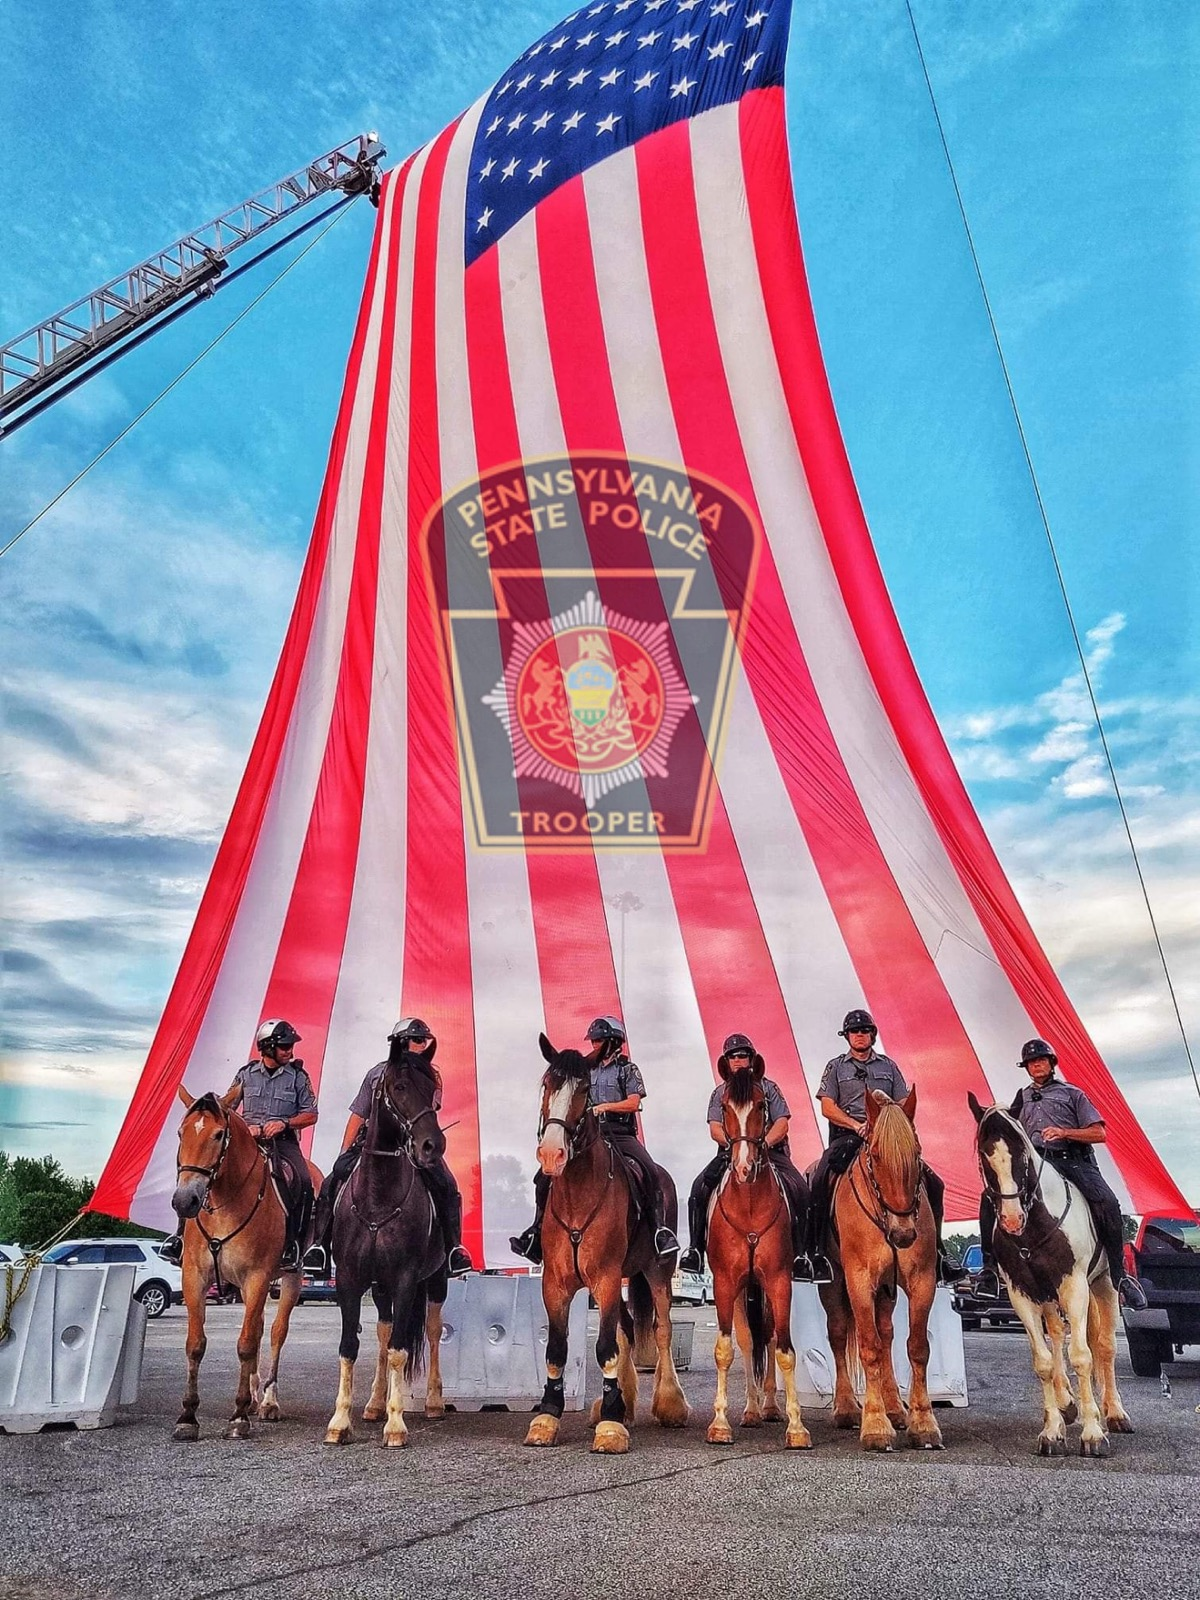 PA state police seek horse donations